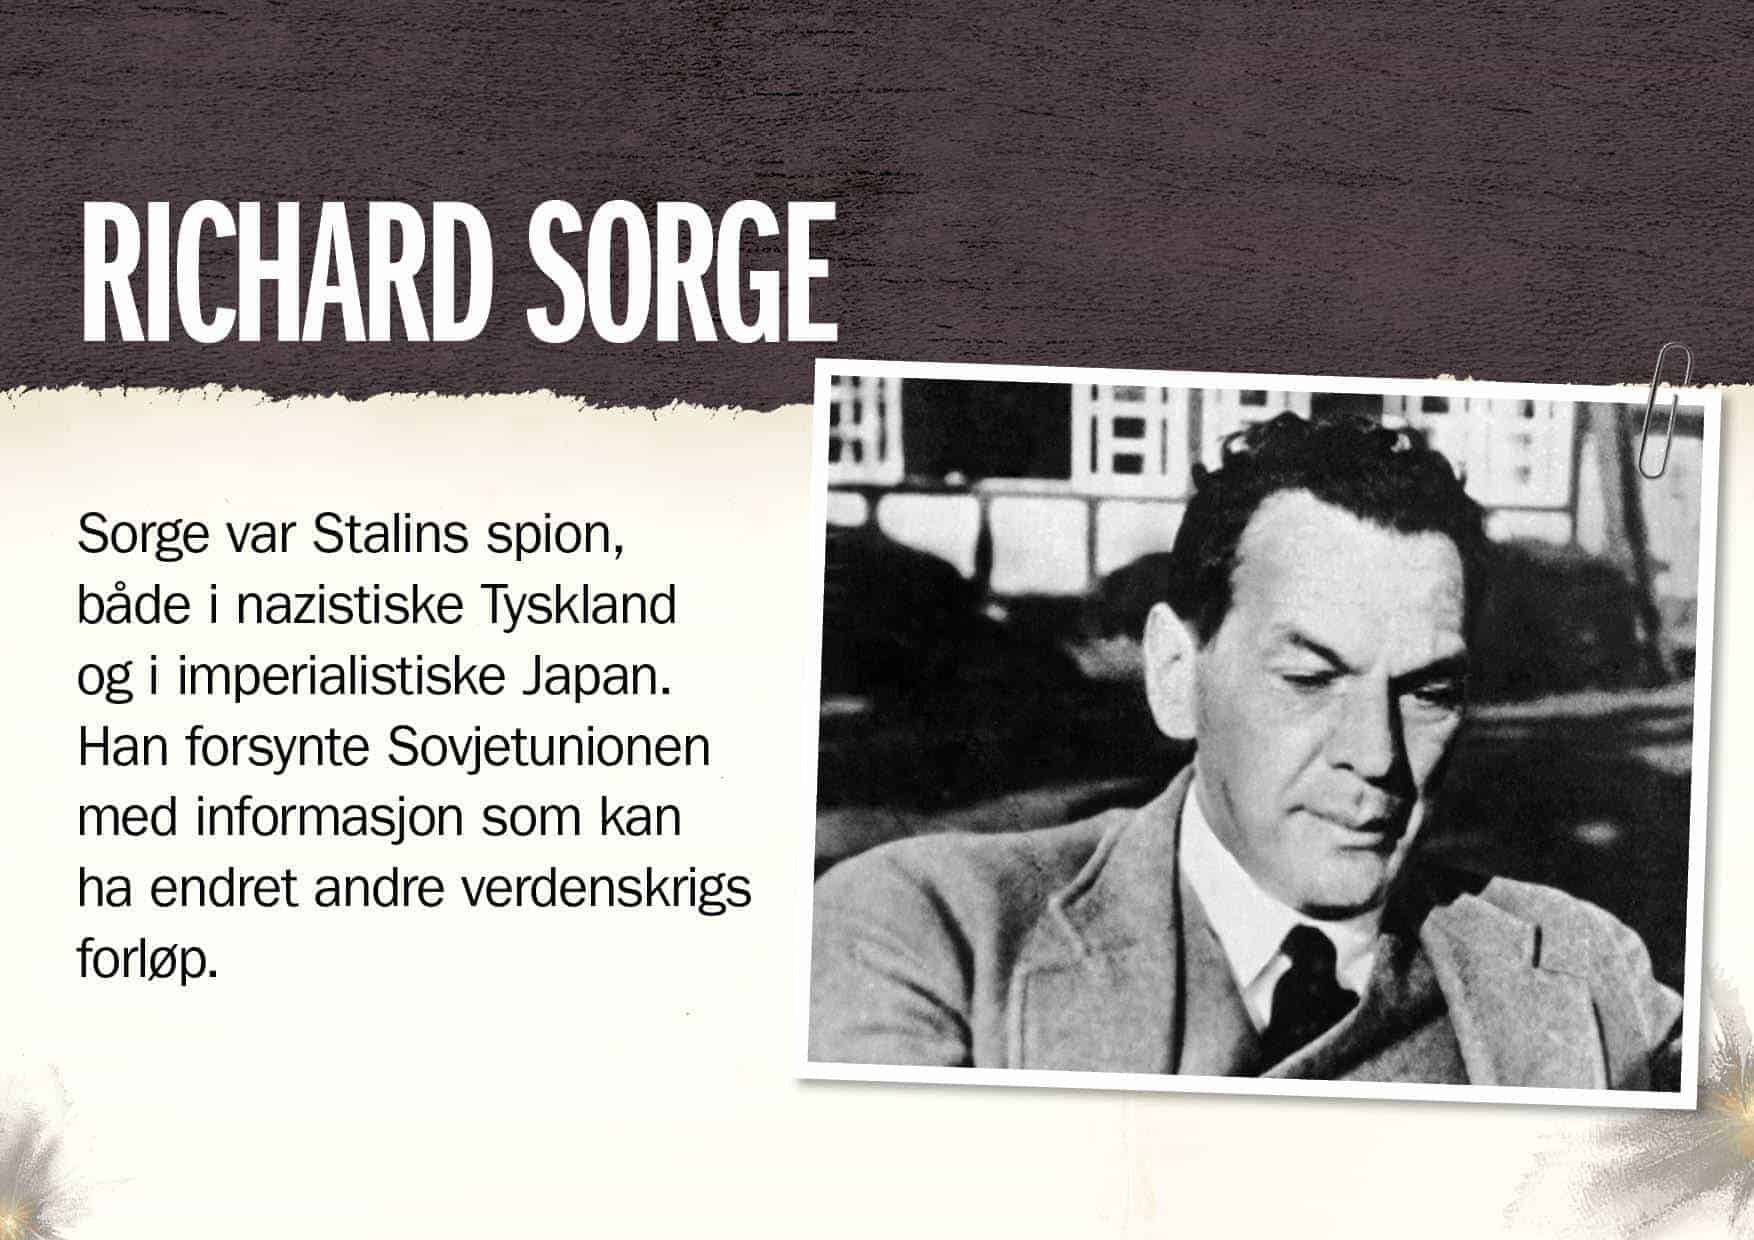 Superspioner: Richard Sorge